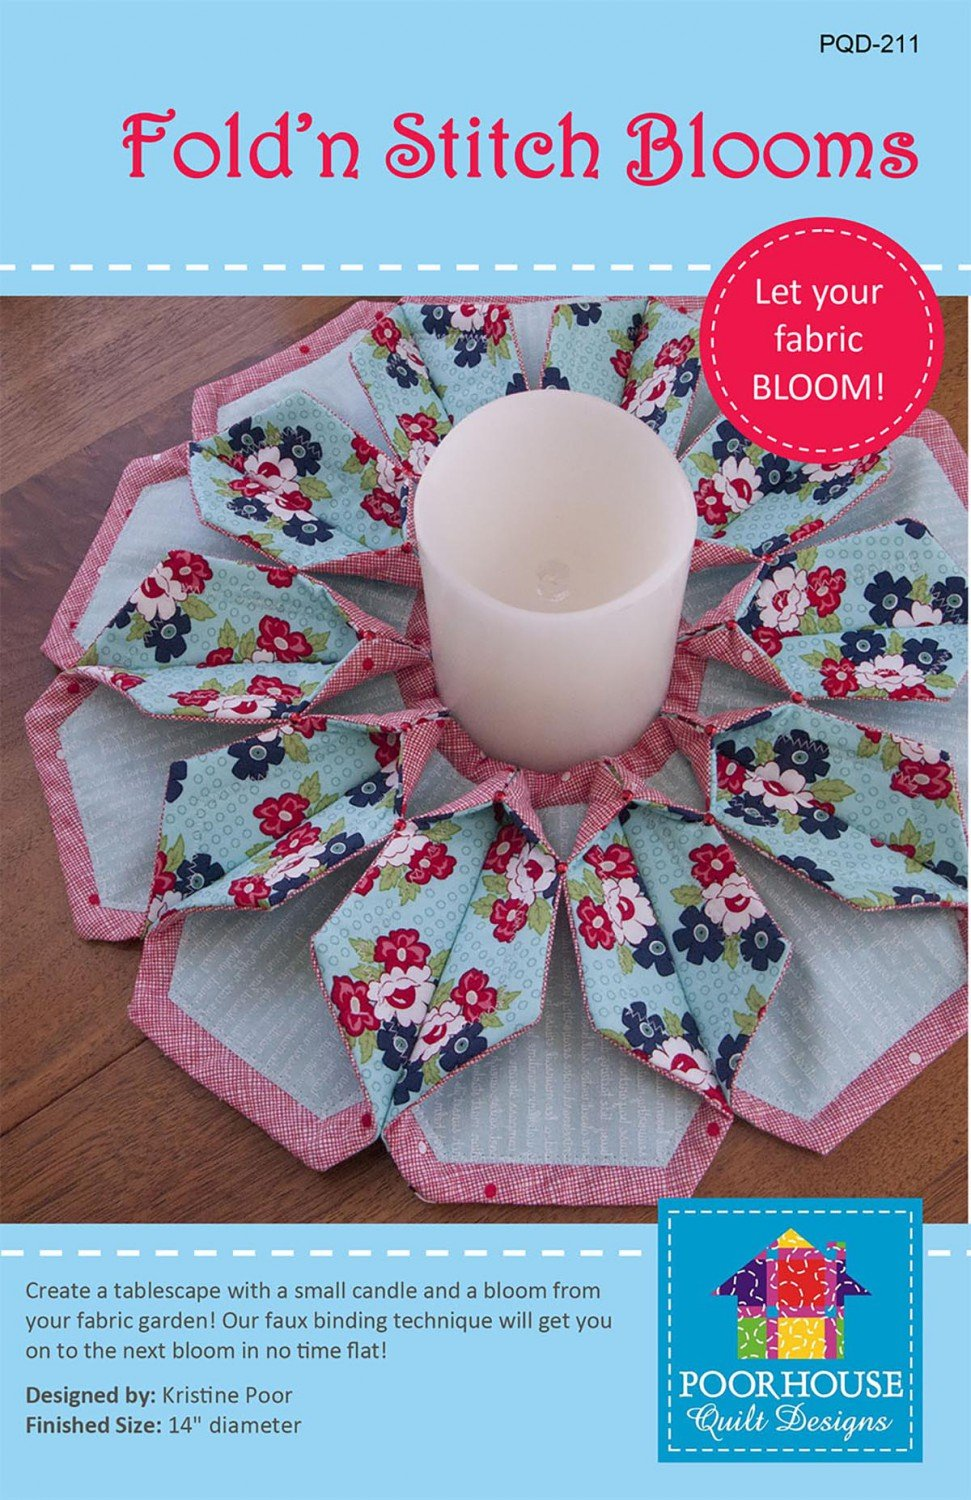 Fold N Stitch Blooms by Poorhouse Designs